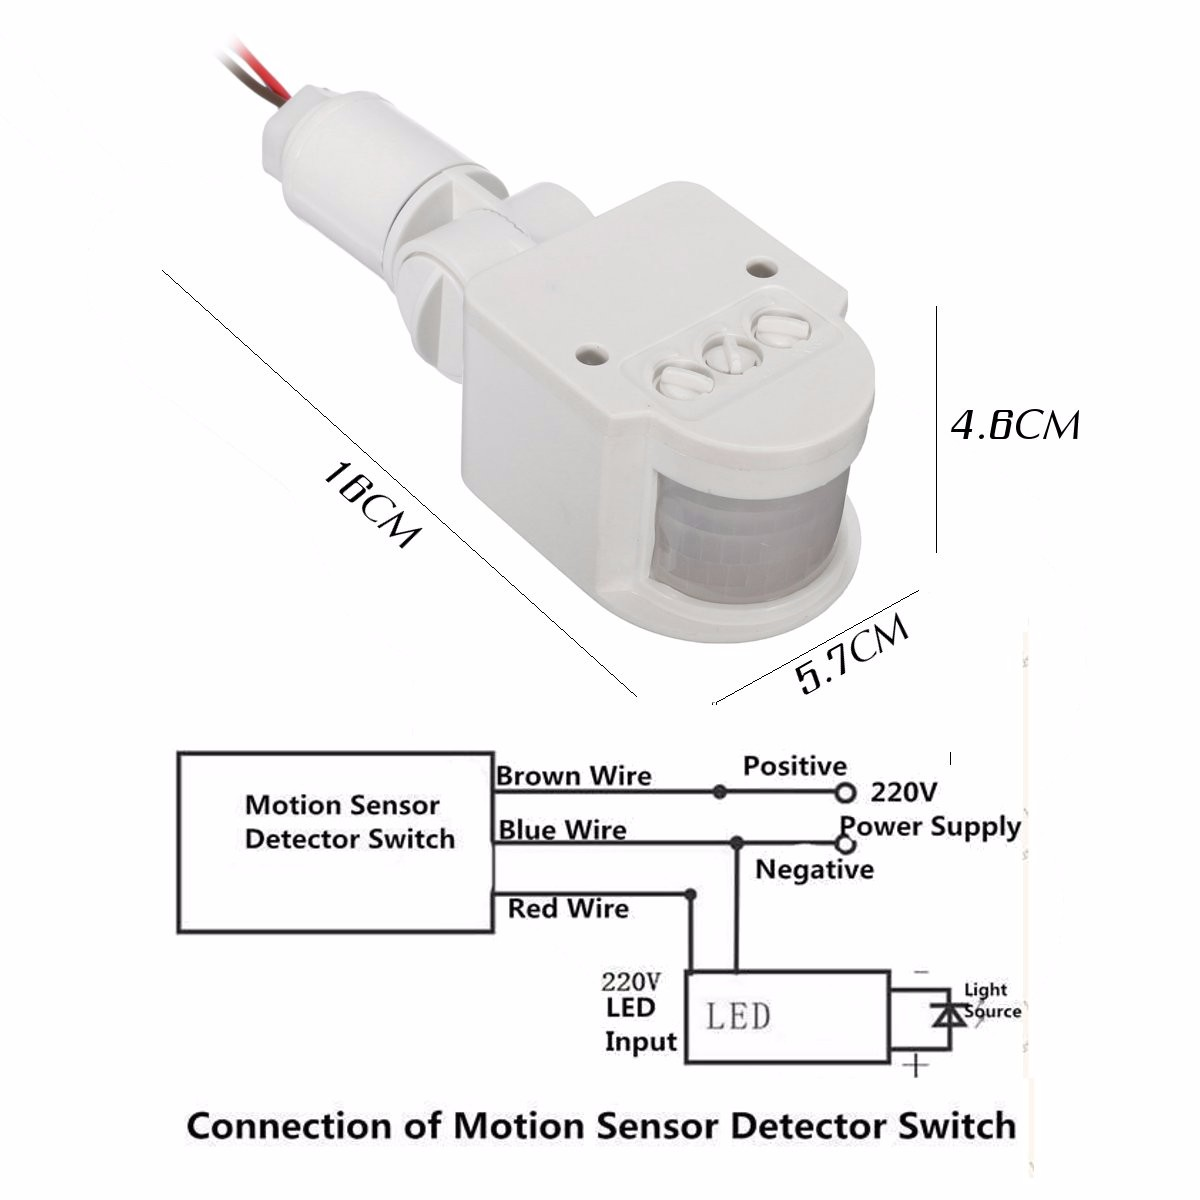 Wiring A Motion Sensor Light Diagram from static-resources.imageservice.cloud